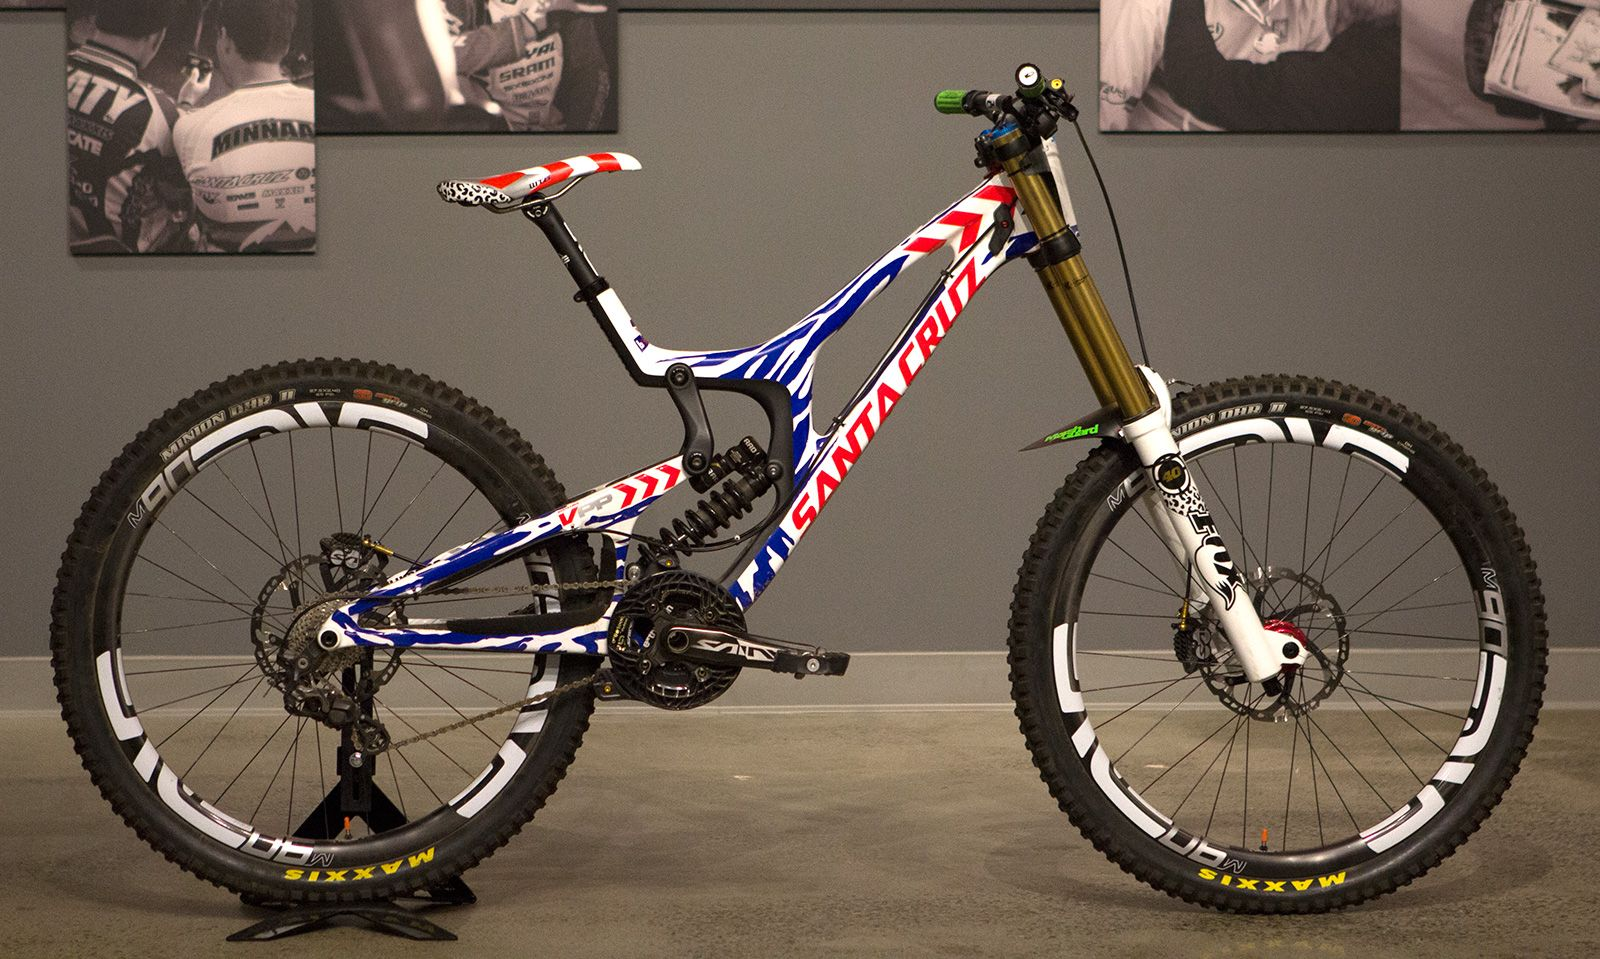 280bbd6bc55 This is the bike that Ratboy used to almost win World Championships. Josh  told us he hopes to be ready for the second round in 2015 and that he feels  that ...